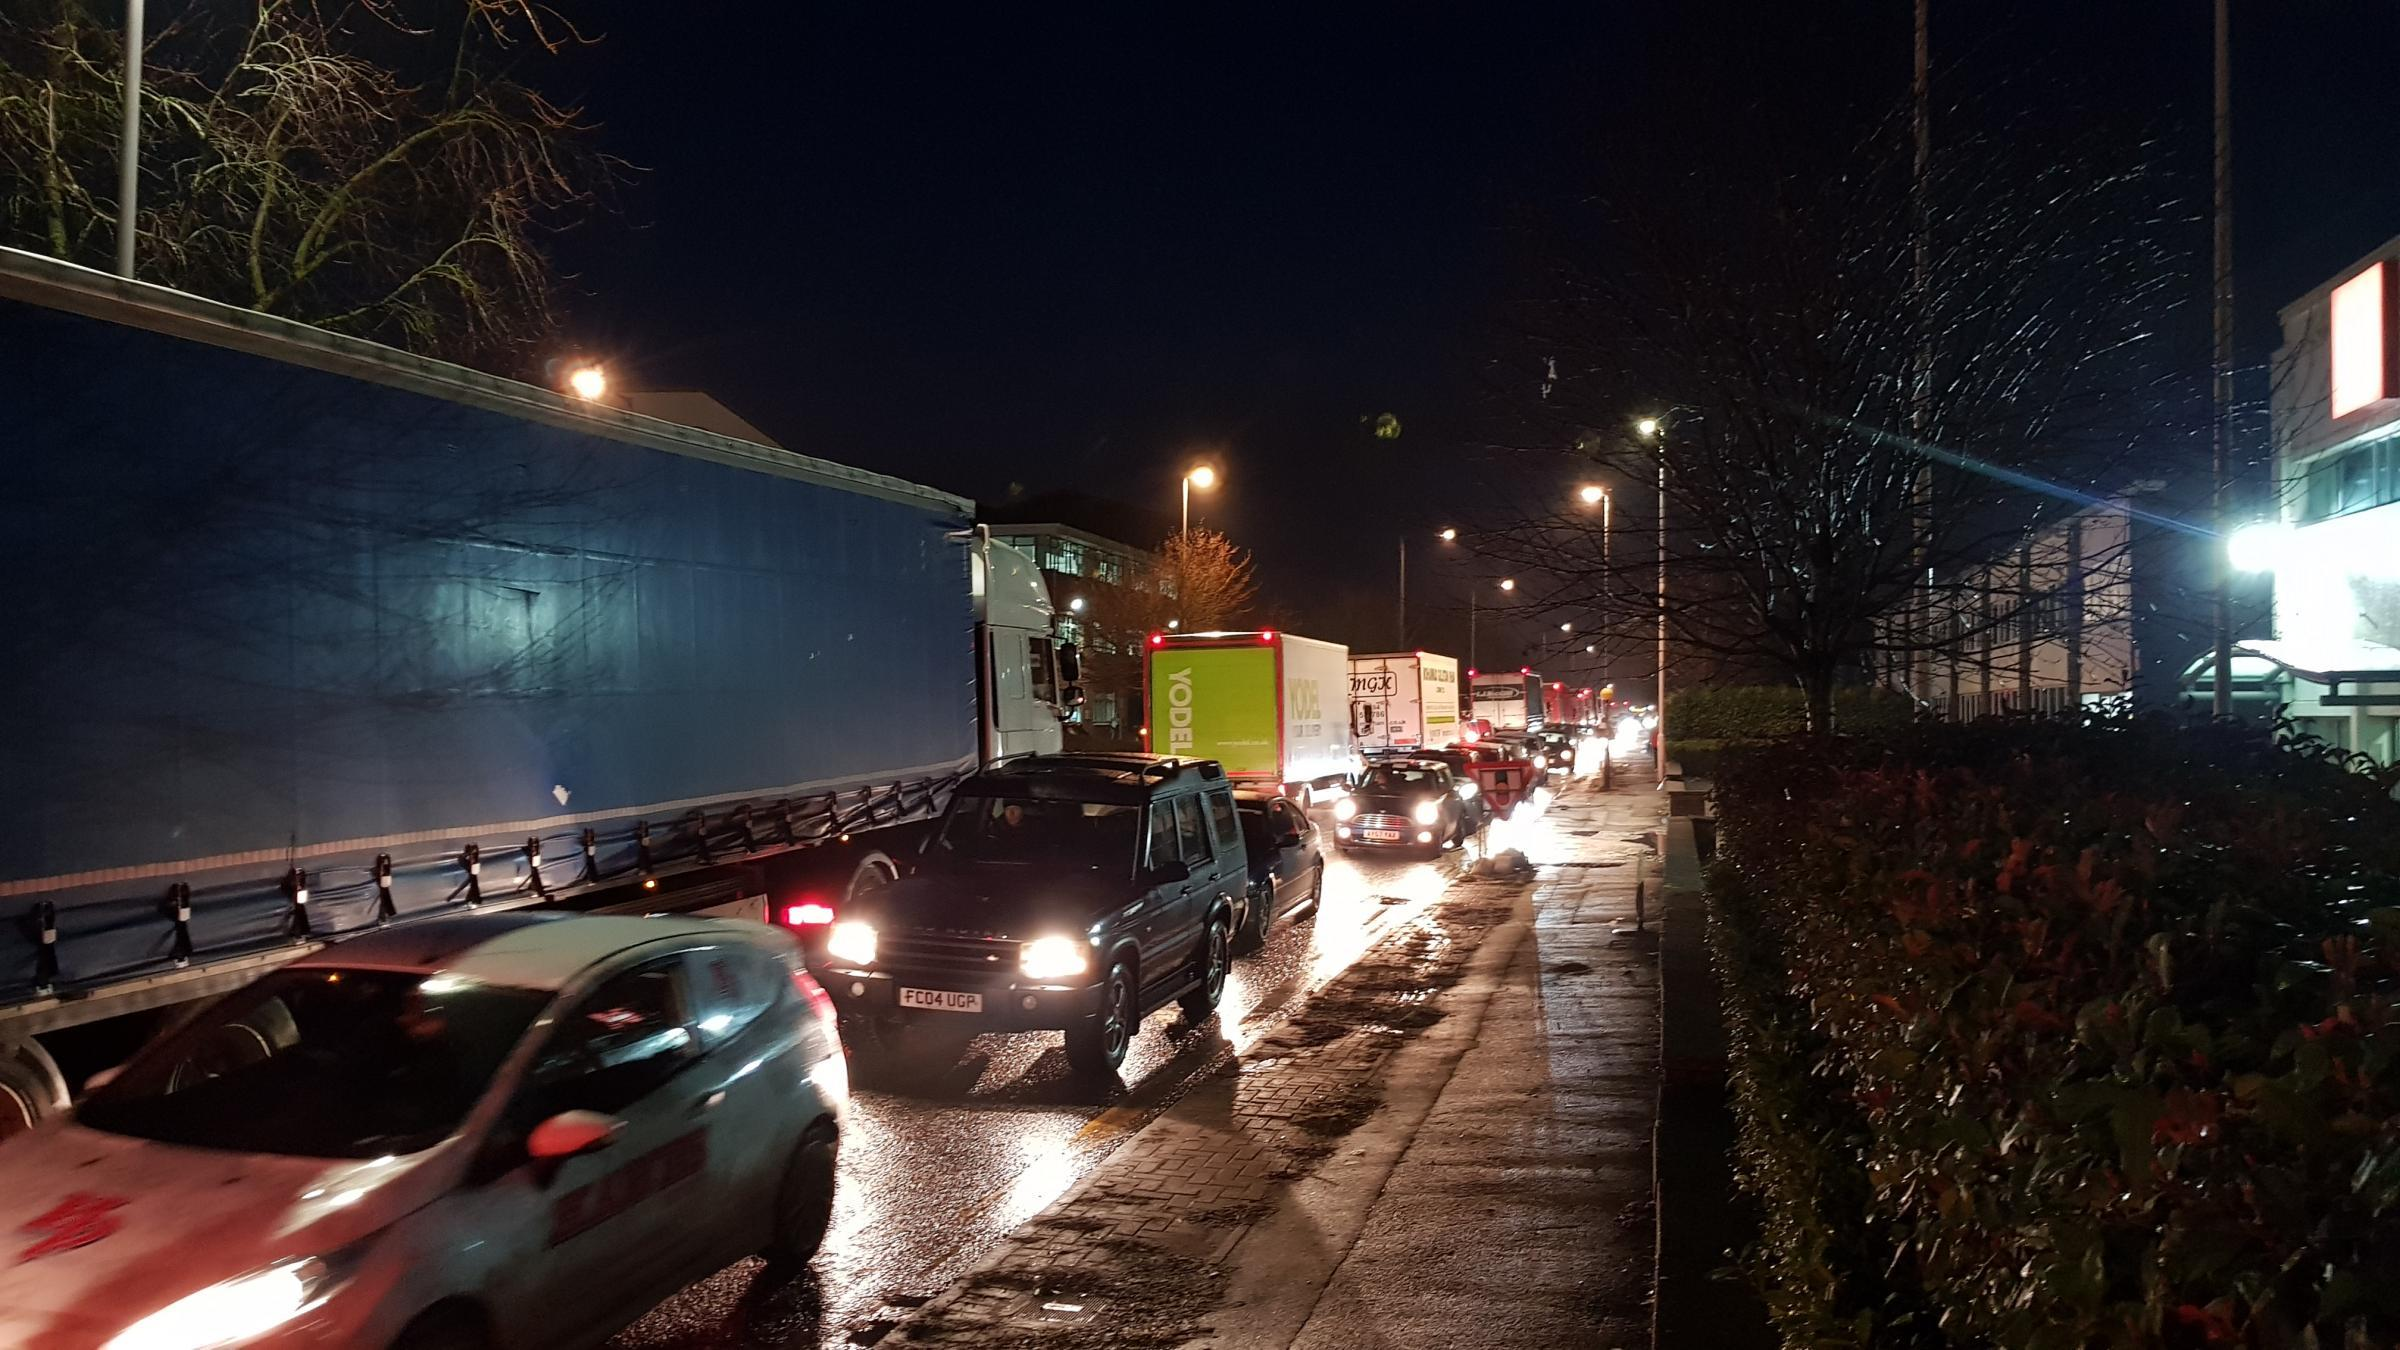 Drivers have faced gridlock trying to get out of the business park